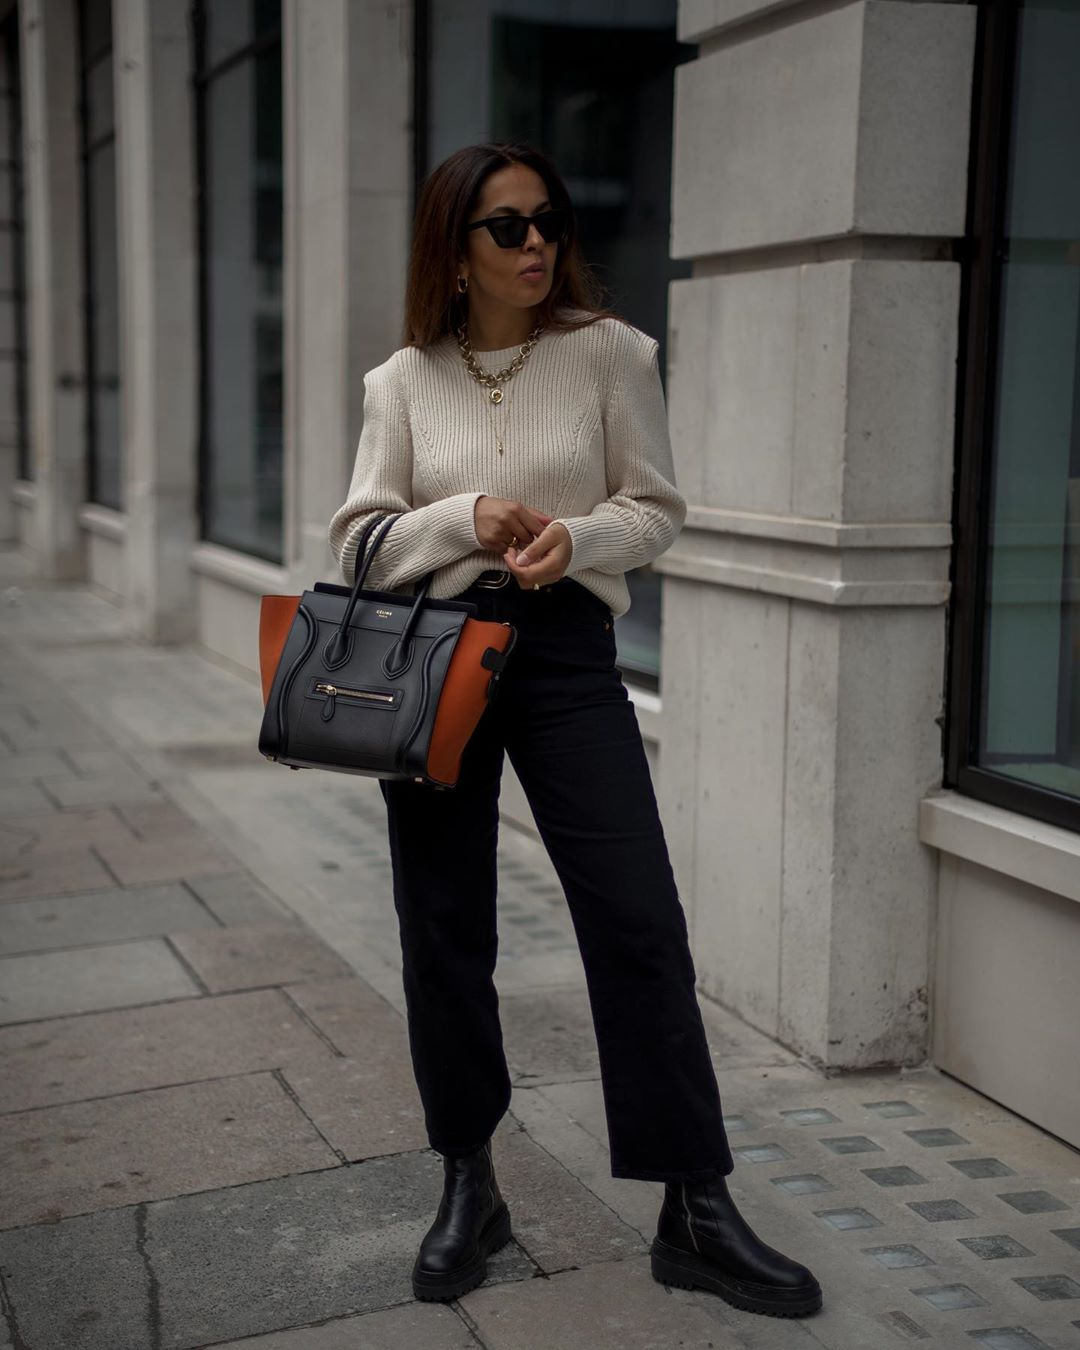 I Love This Way to Style Cropped Jeans for Fall